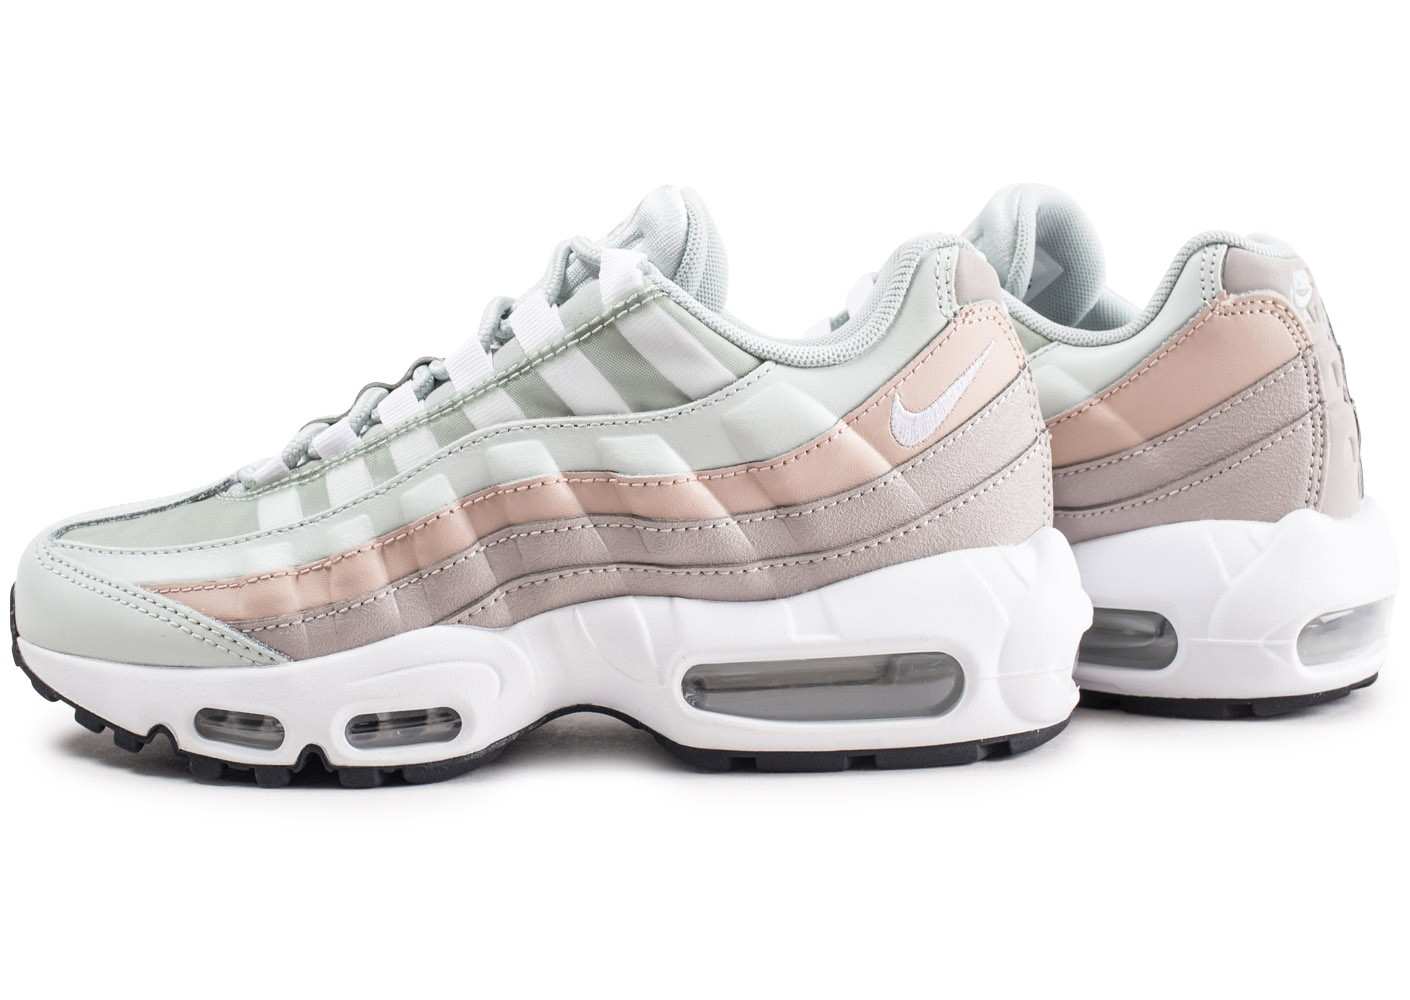 Nike Nike Air Max 95 argent et beige Chaussures Baskets